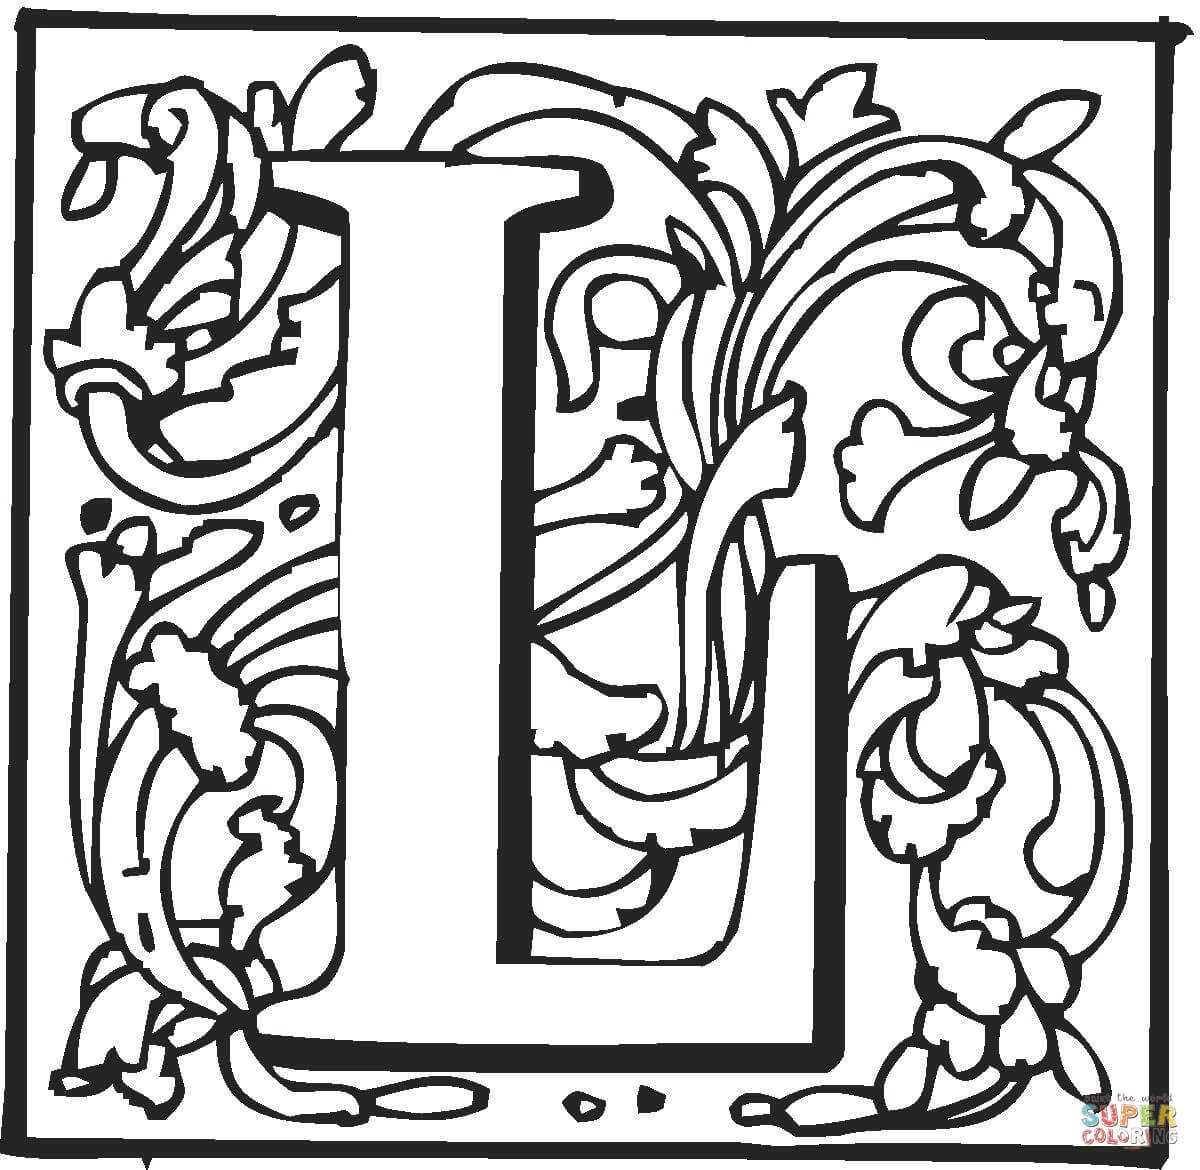 Letter L coloring page | Free Printable Coloring Pages